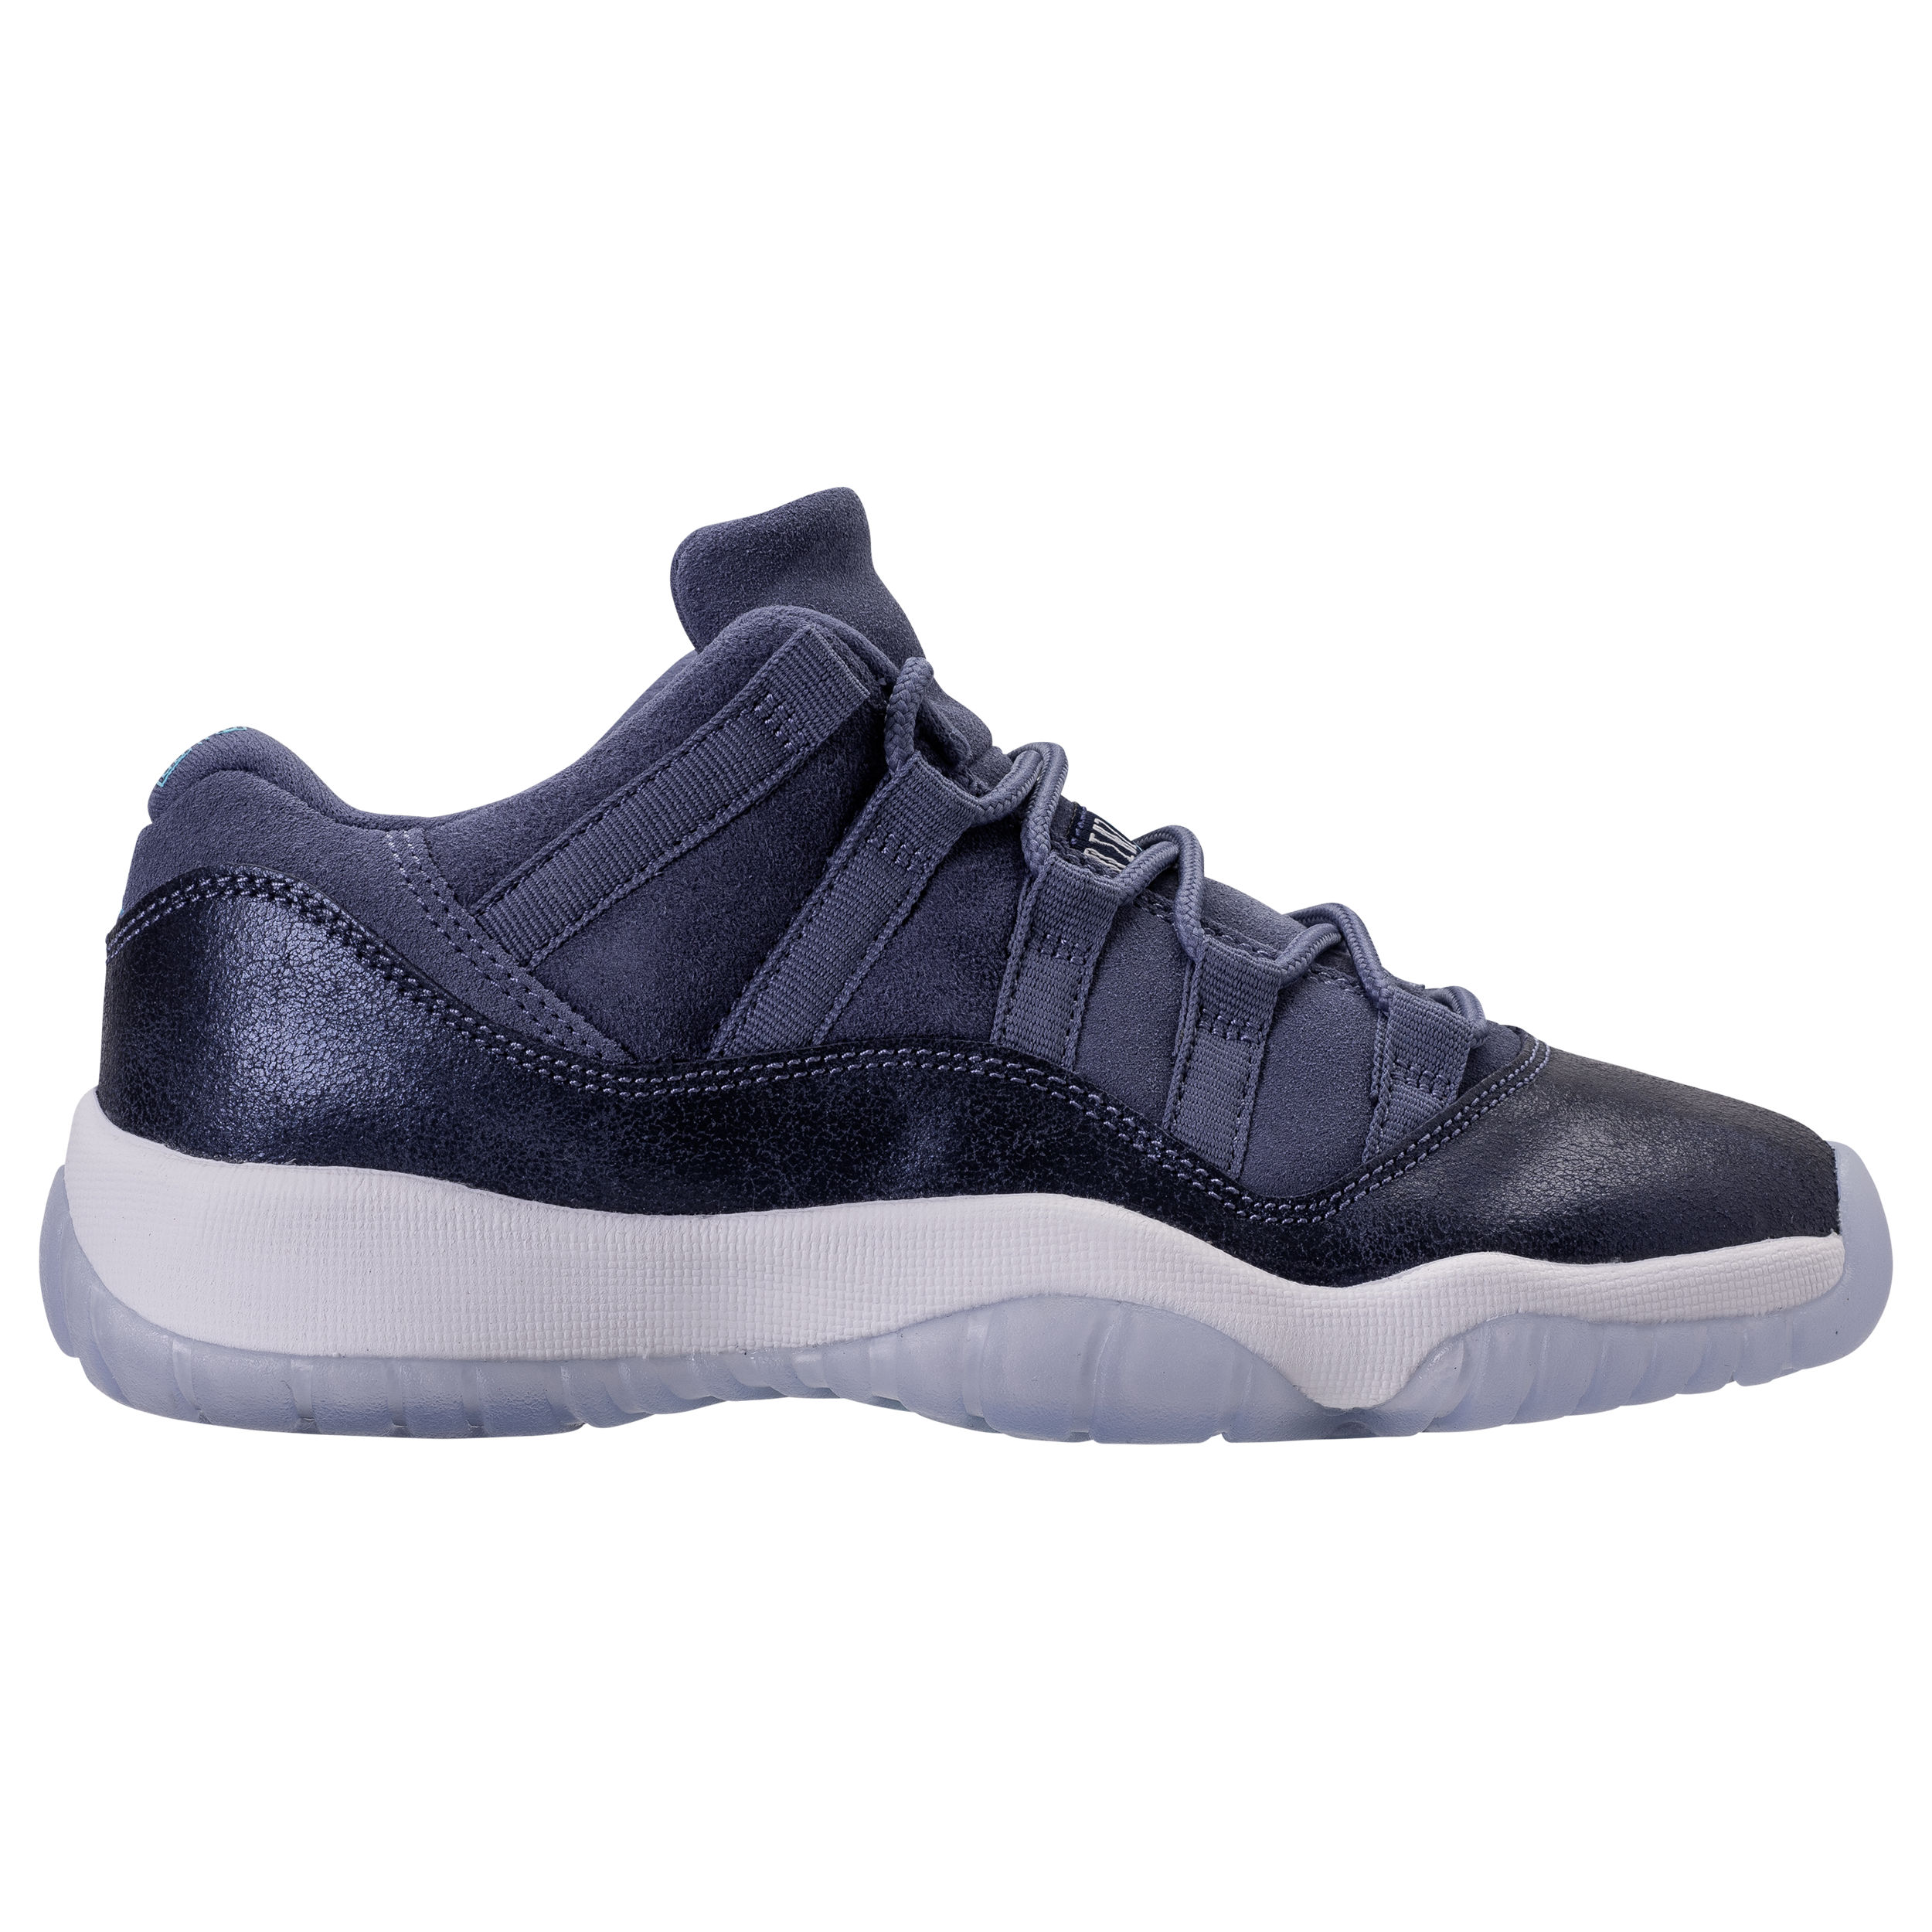 sale retailer d5d55 7d69d ... Available Now on Kixify   eBay. TAGS  Air Jordan · Air Jordan 11 . ...